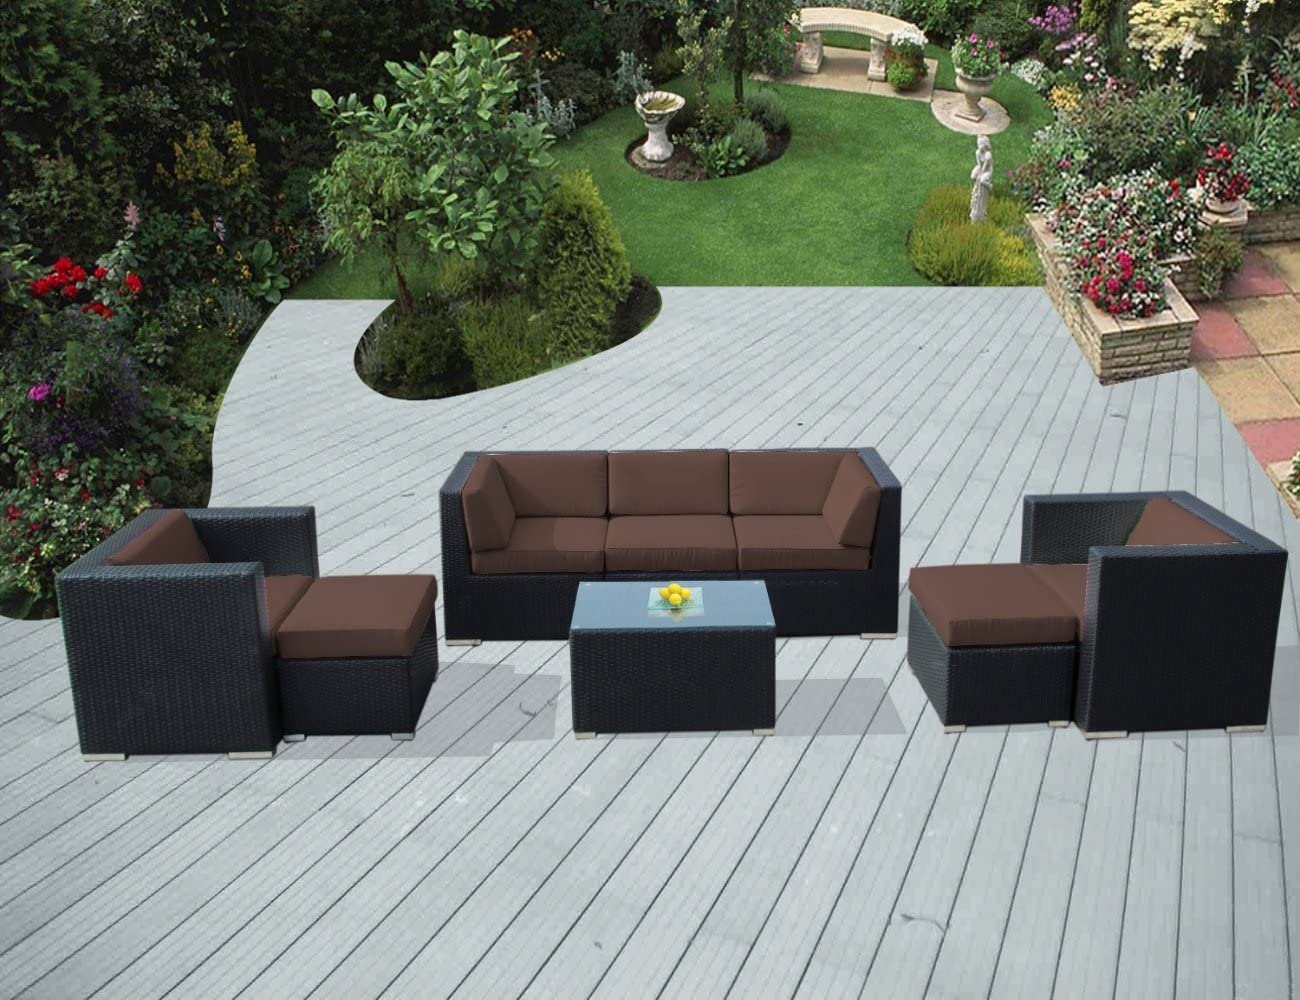 Ohana 8-Piece Outdoor Patio Furniture Sectional Conversation Set, Black Wicker with Brown Cushions – No Assembly with Free Patio Cover